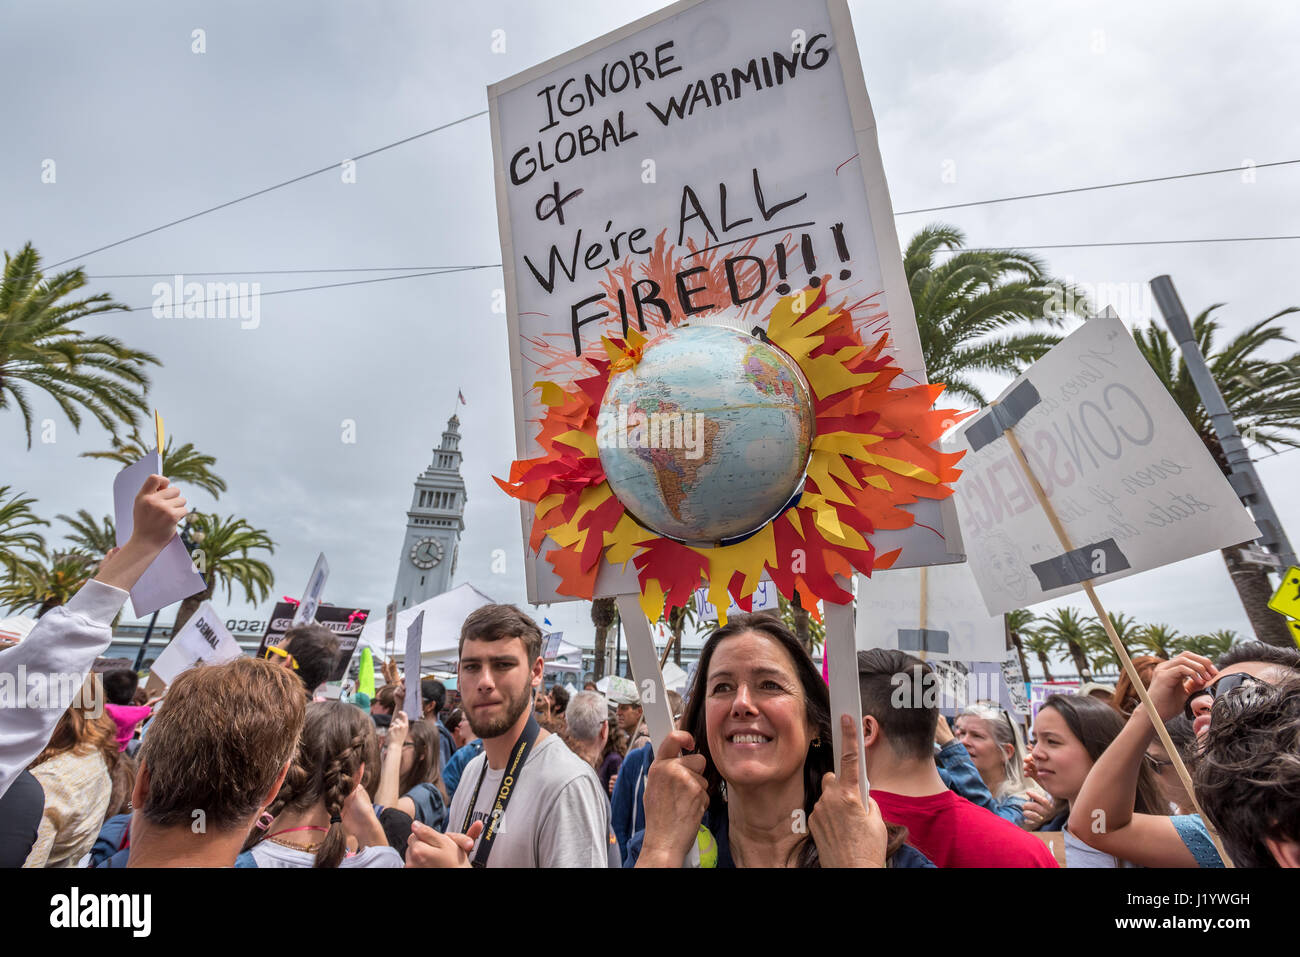 San Francisco, California, USA. 22nd April, 2017. 'Ignore global warming and we're all fired!!!' reads - Stock Image